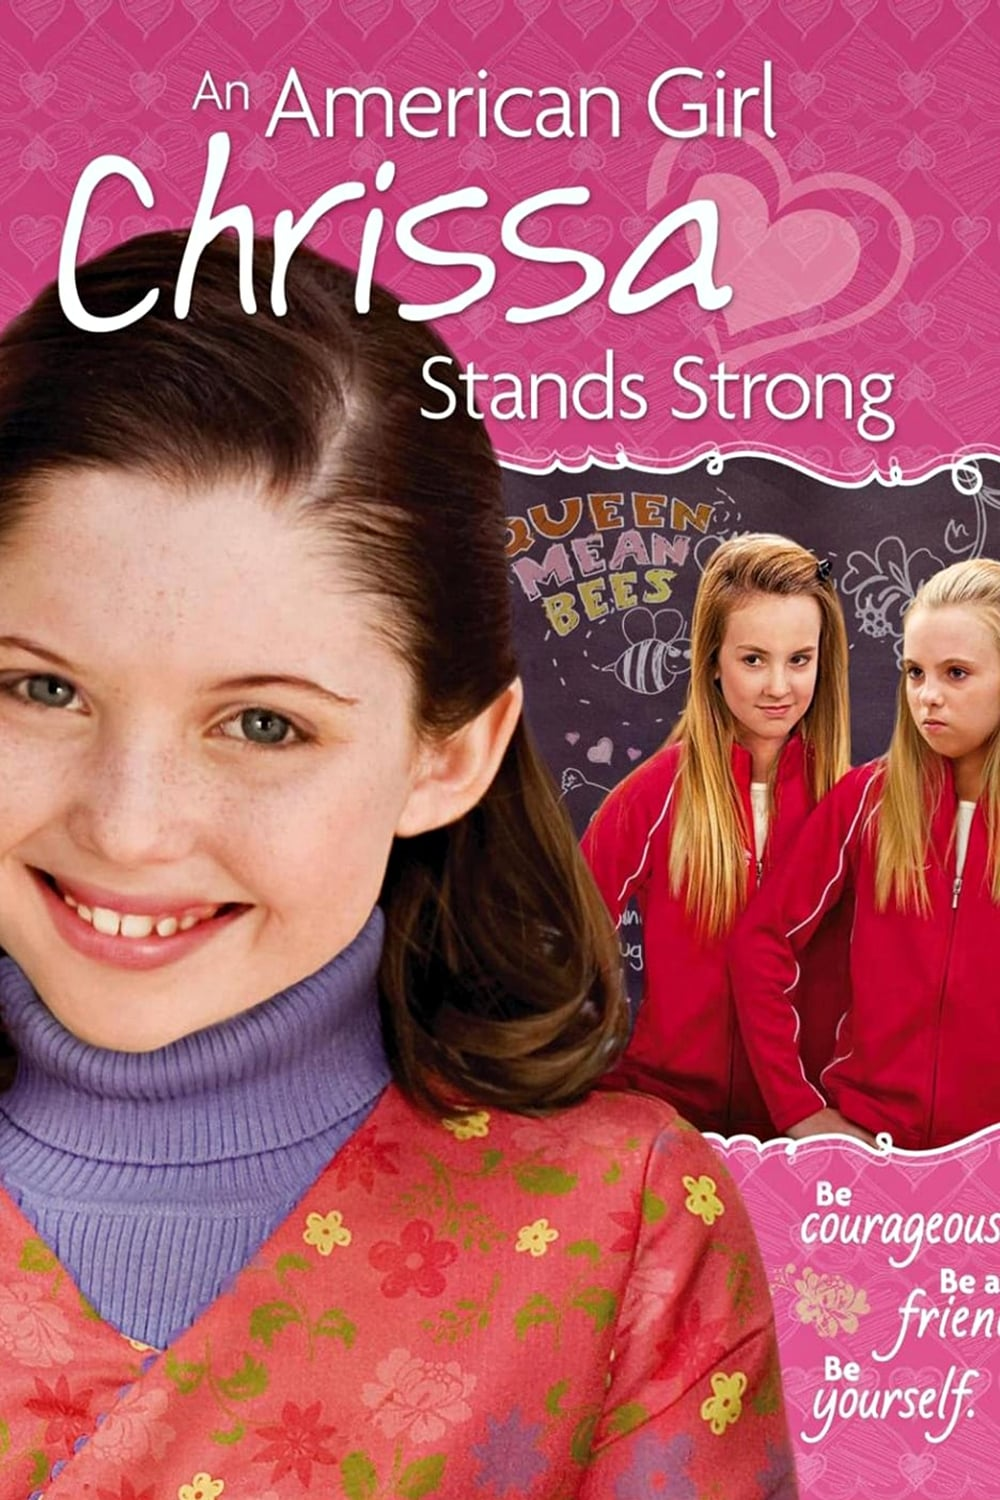 An American Girl: Chrissa Stands Strong (2009)